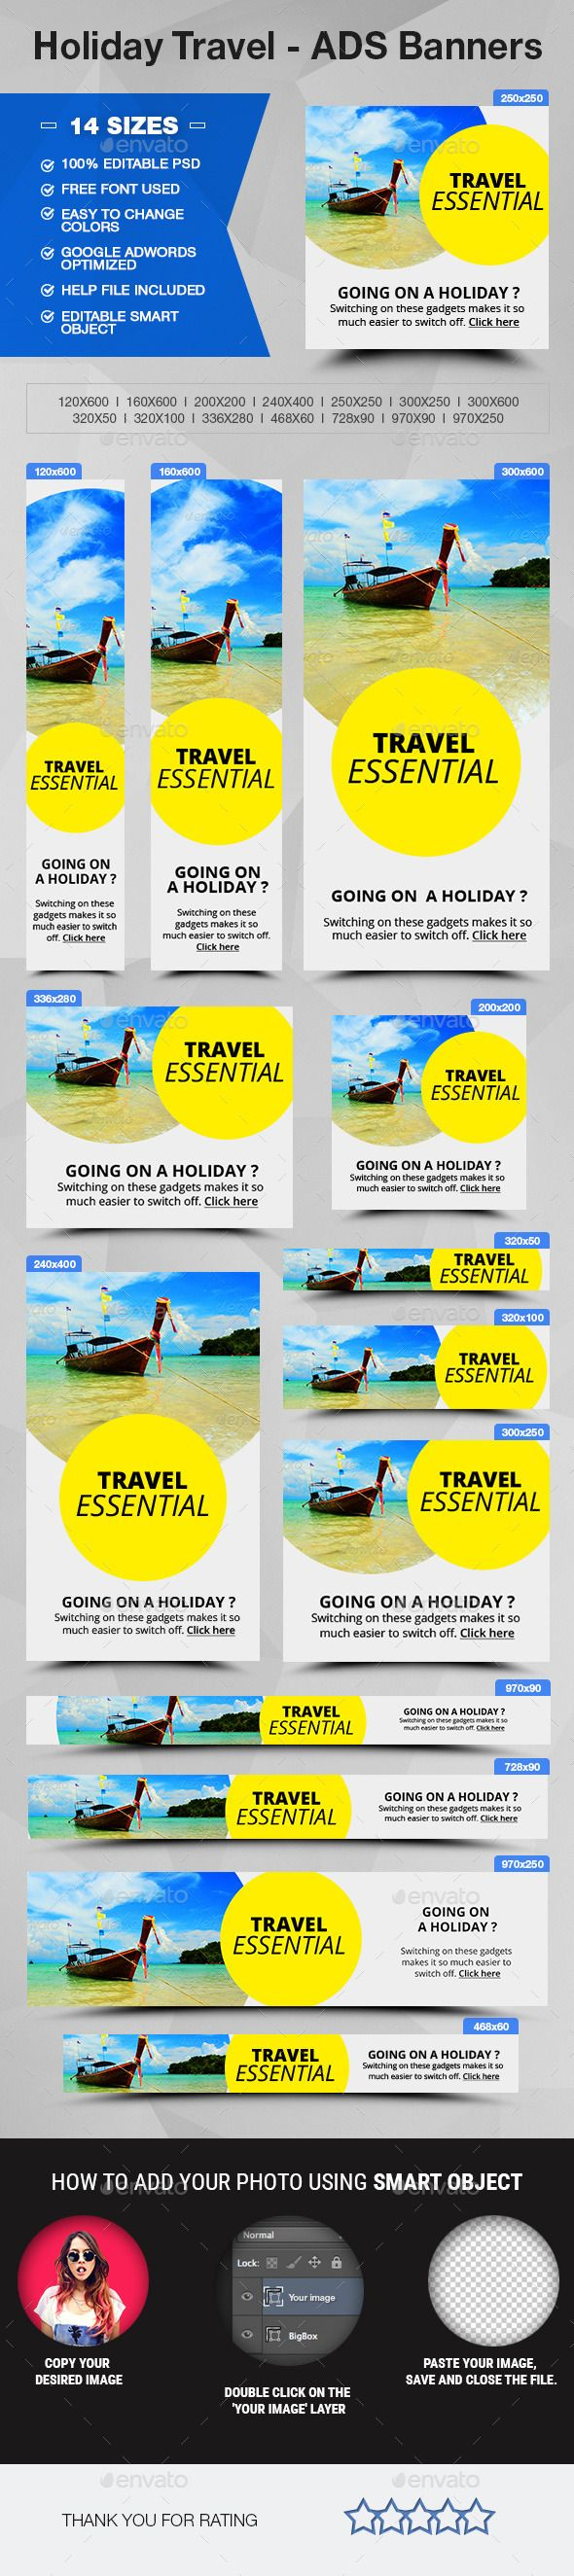 Holiday Travel - ADS Banners Template #design Download: http://graphicriver.net/item/holiday-travel-ads-banners/12269139?ref=ksioks